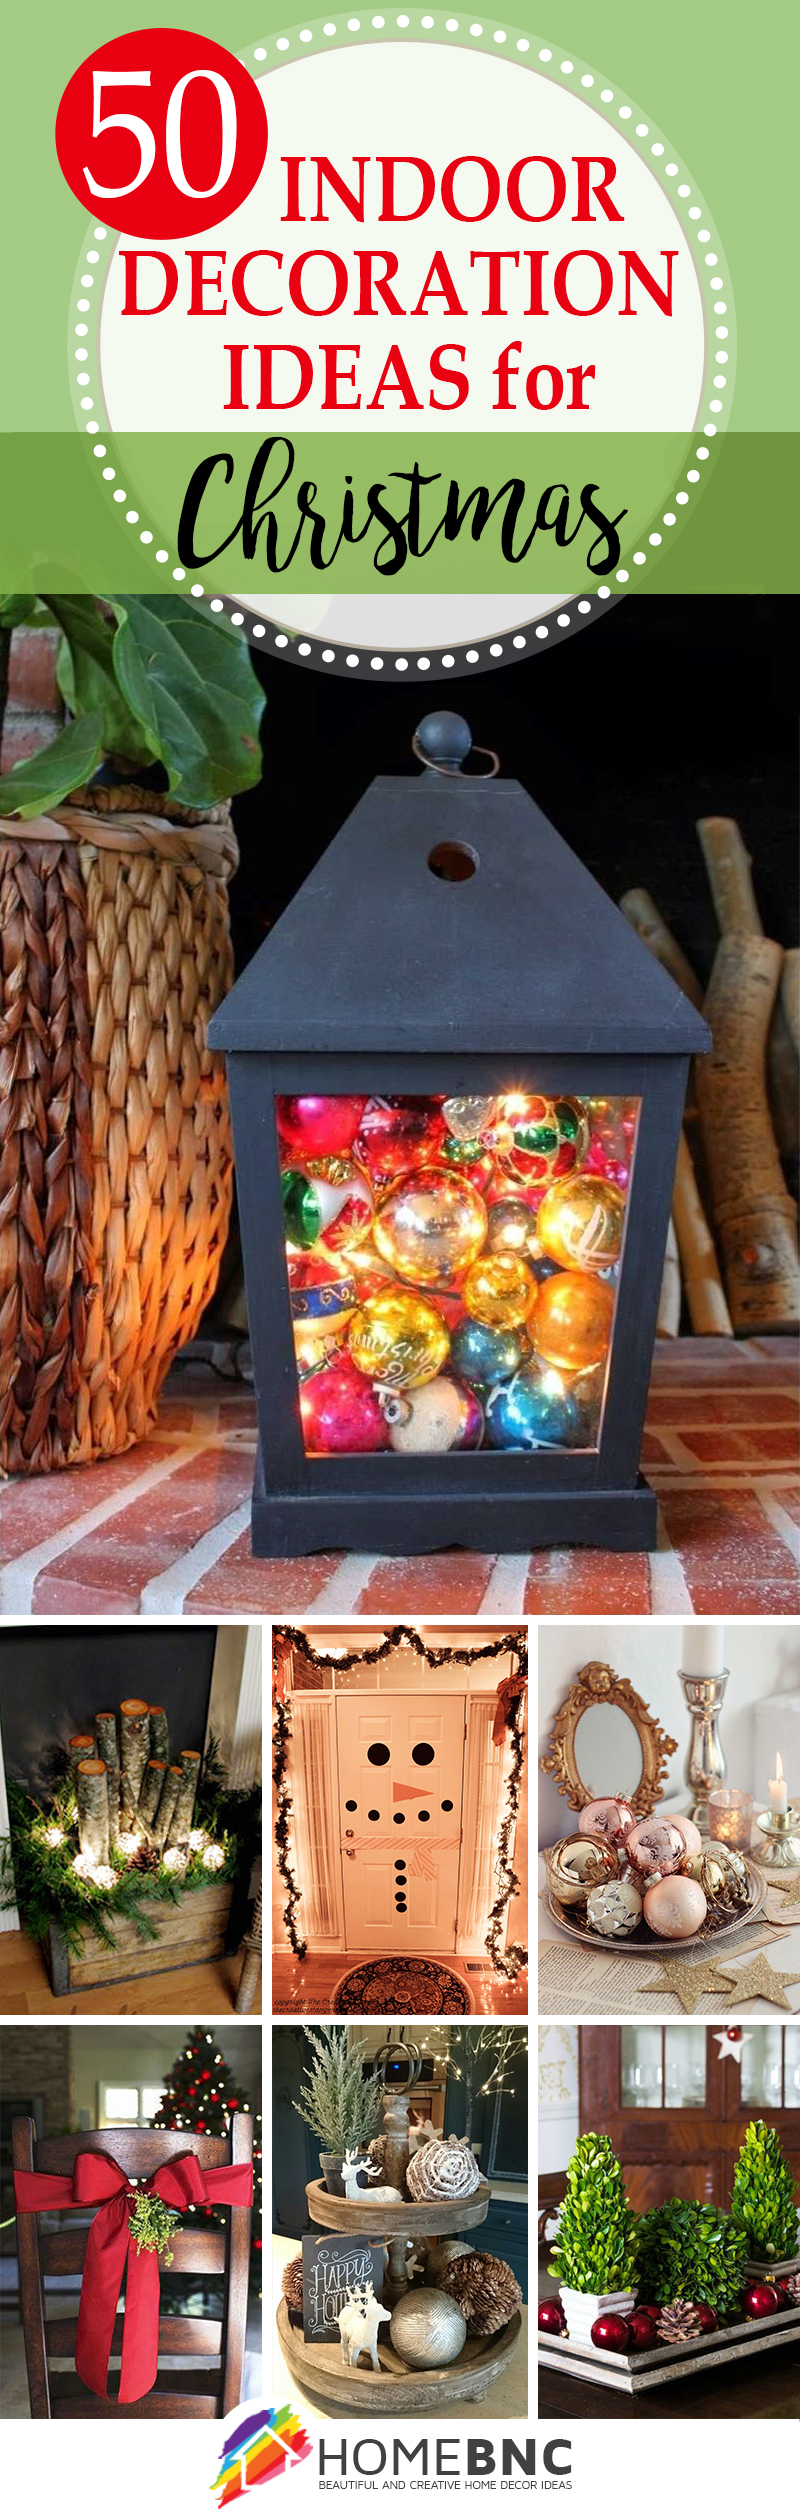 50 best indoor decoration ideas for christmas in 2017 for Indoor xmas decorating ideas